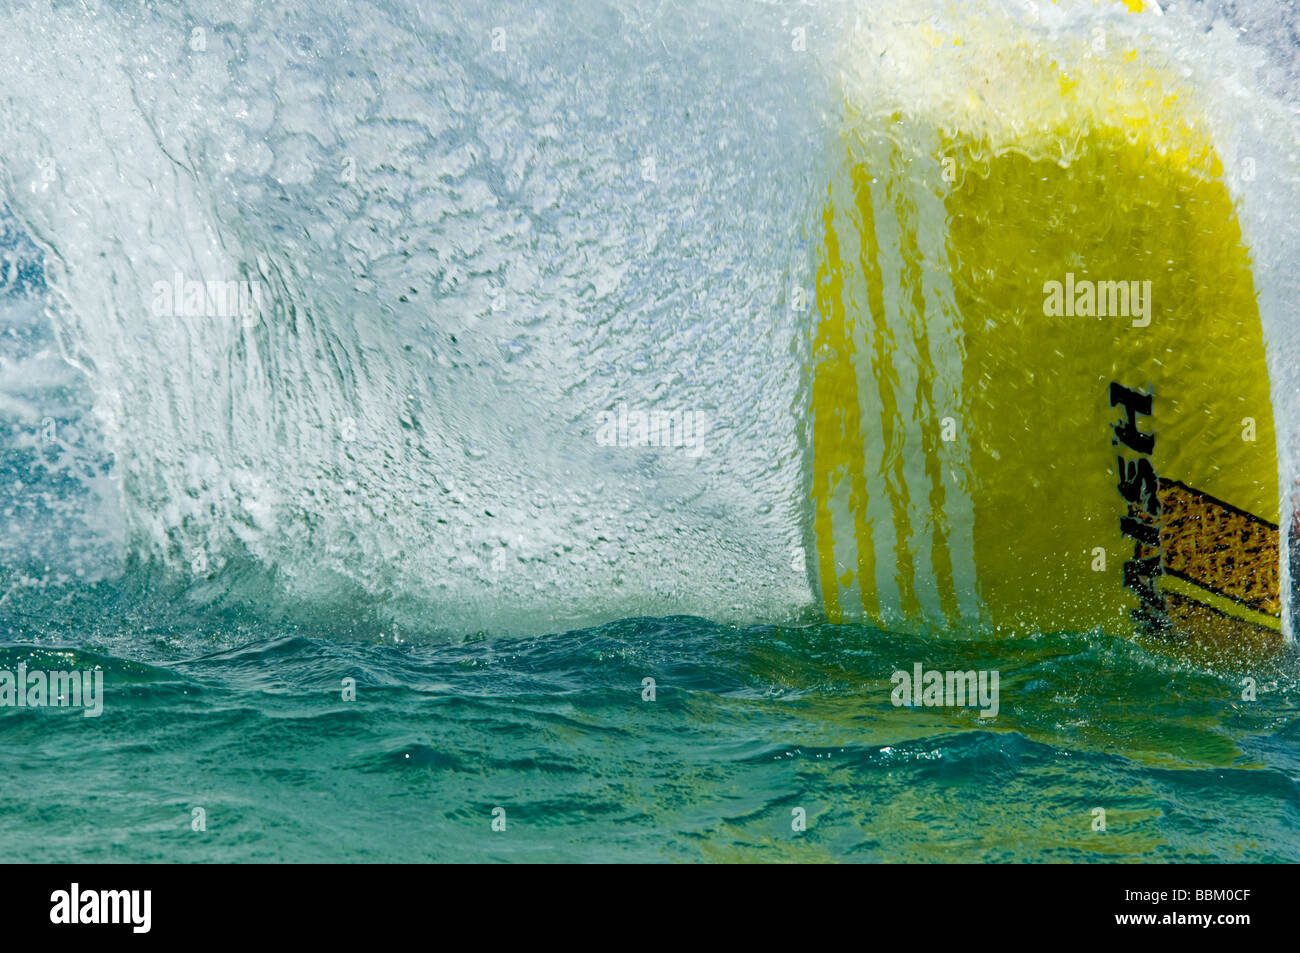 The splash of water generated by a sliding sailboard of a windsurfer - Stock Image